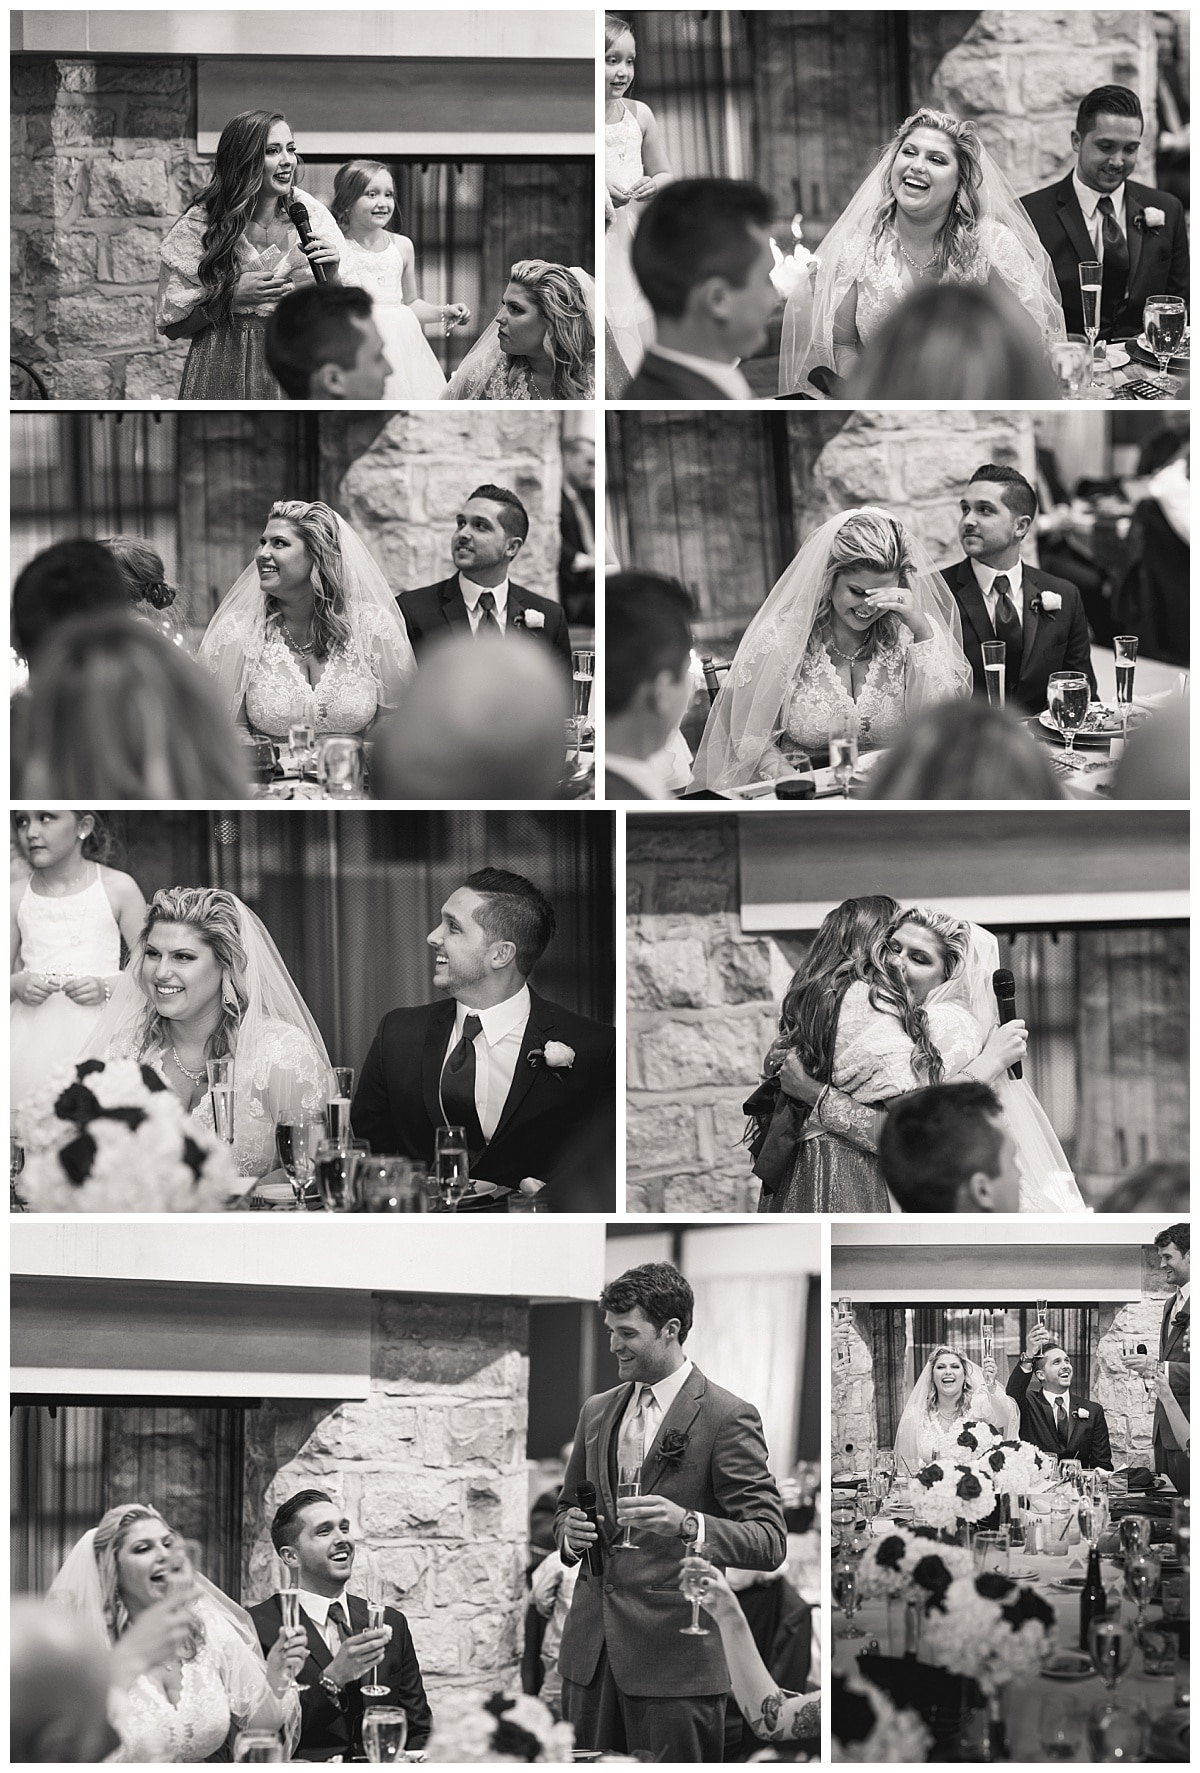 Wedding toast and speeches - Wedding photography by Curtis Wallis